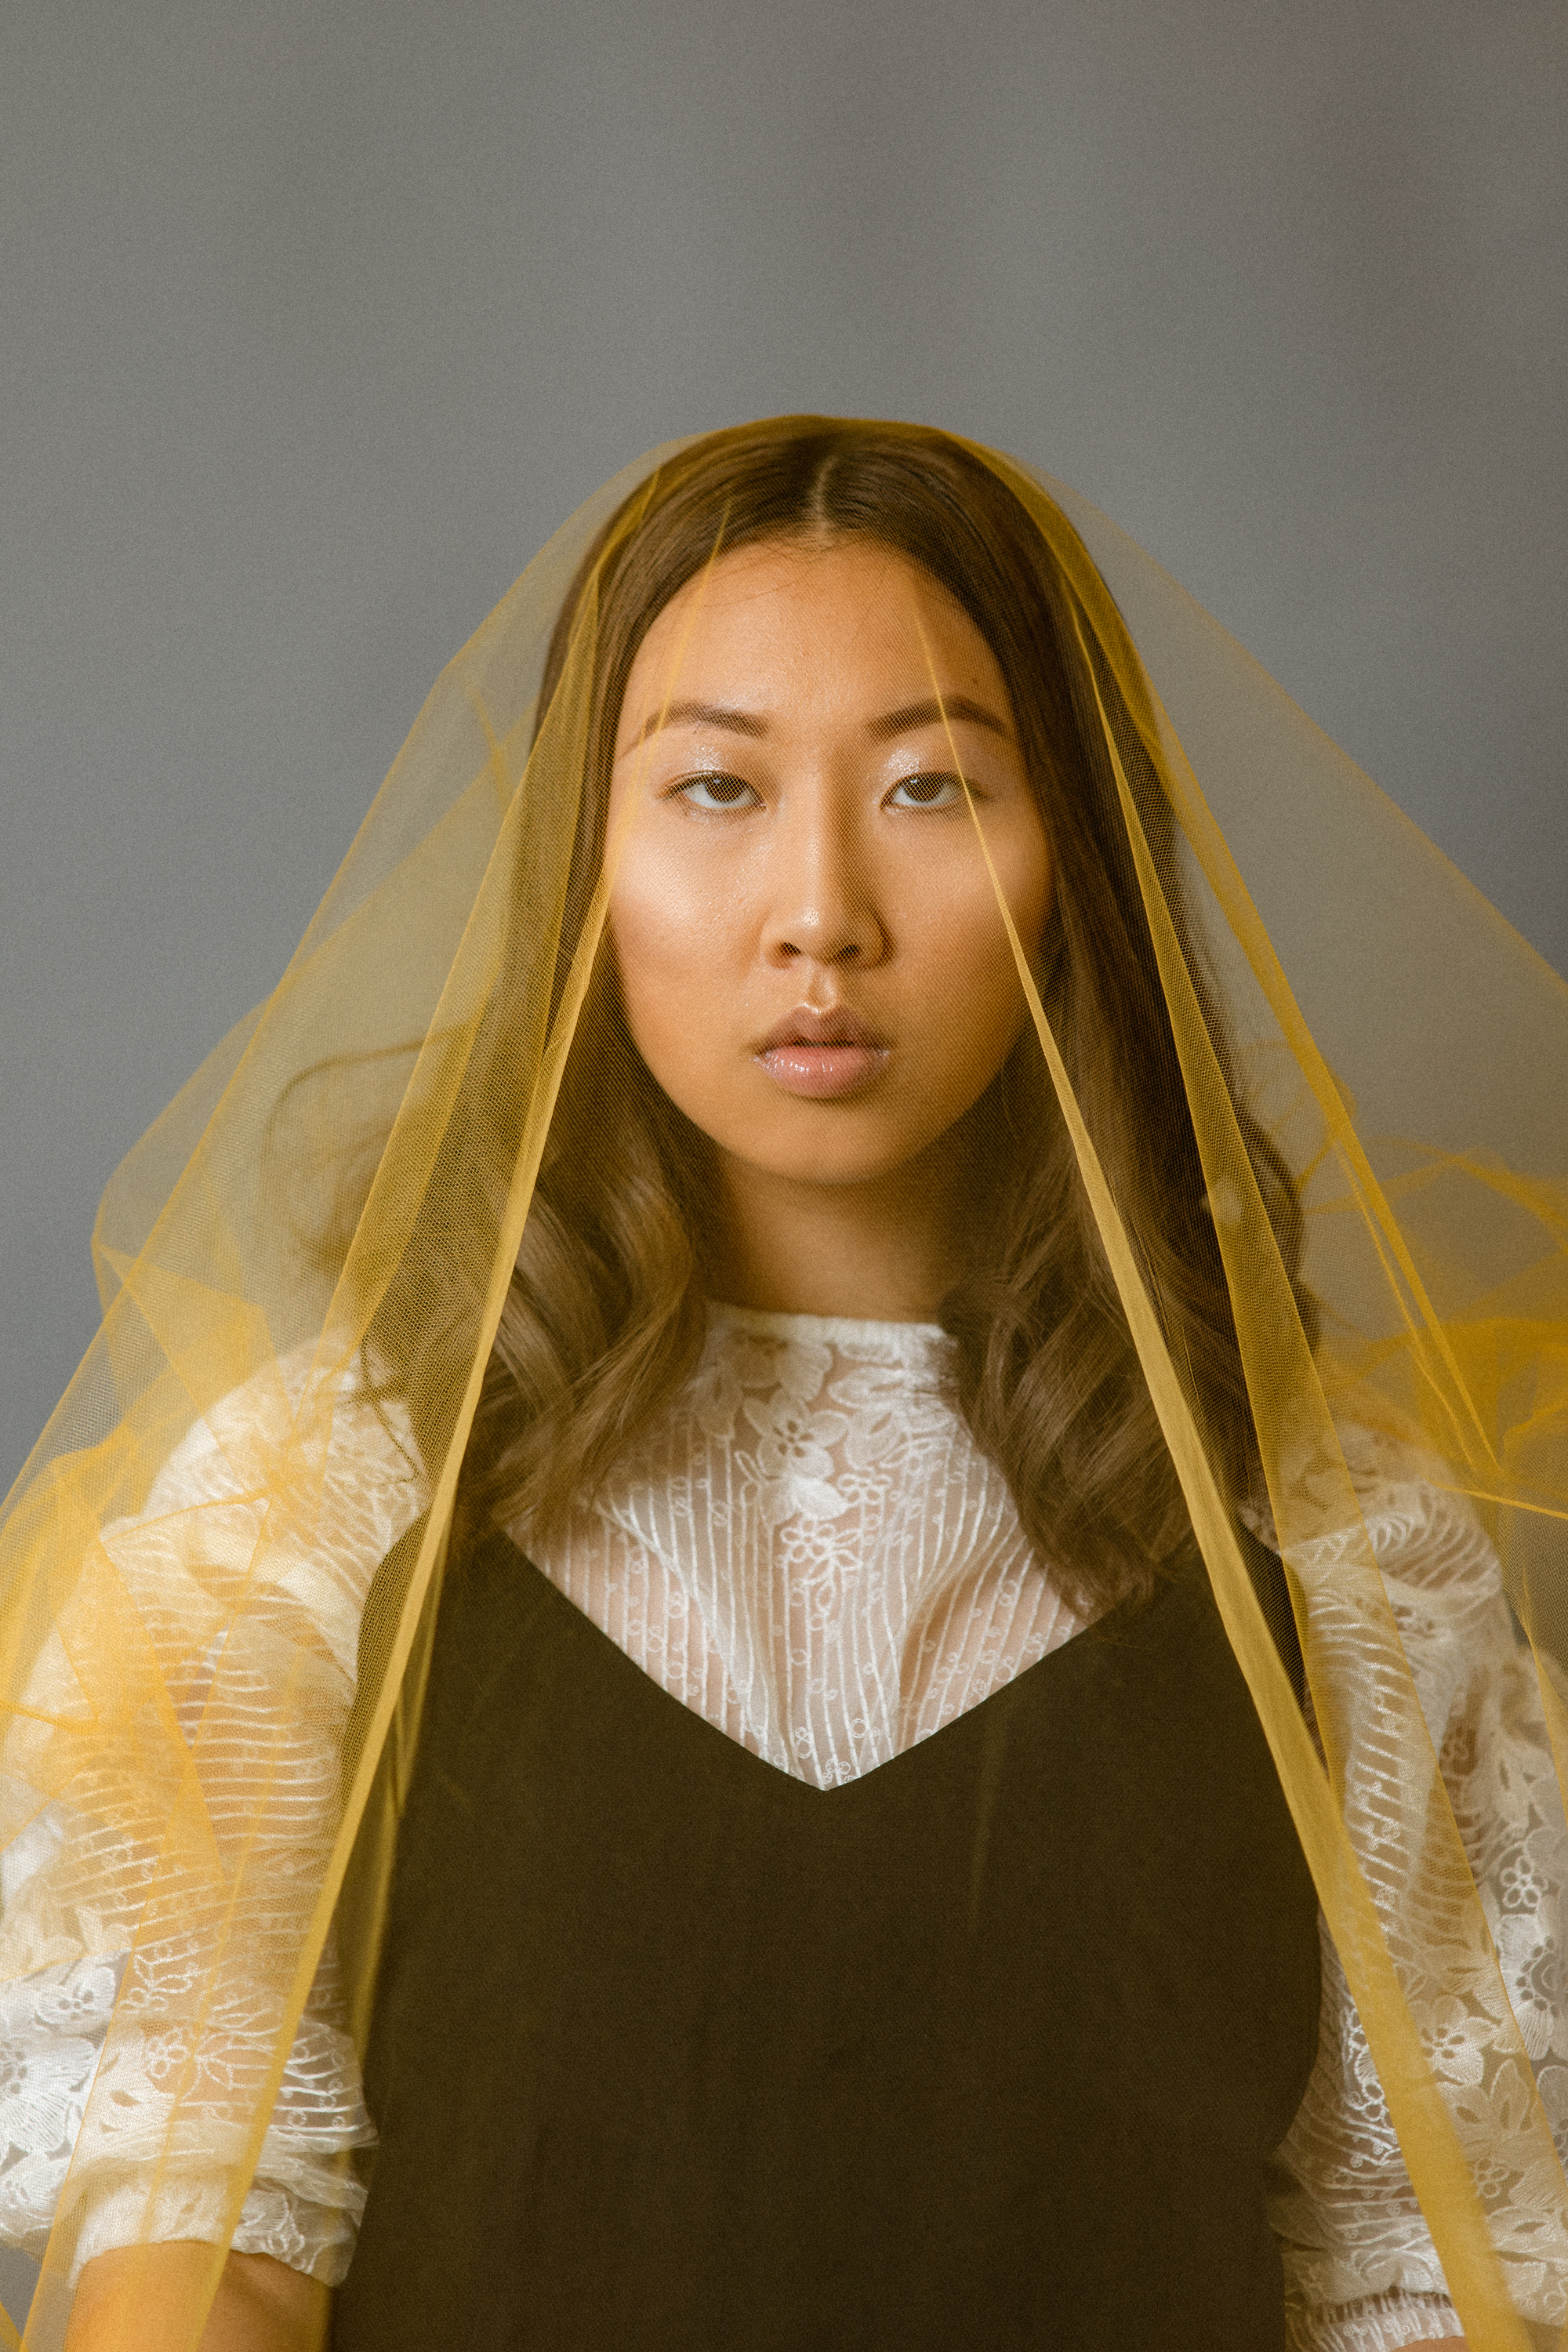 An Asian woman model is staring directly at the camera with yellow tulle covering her whole body.